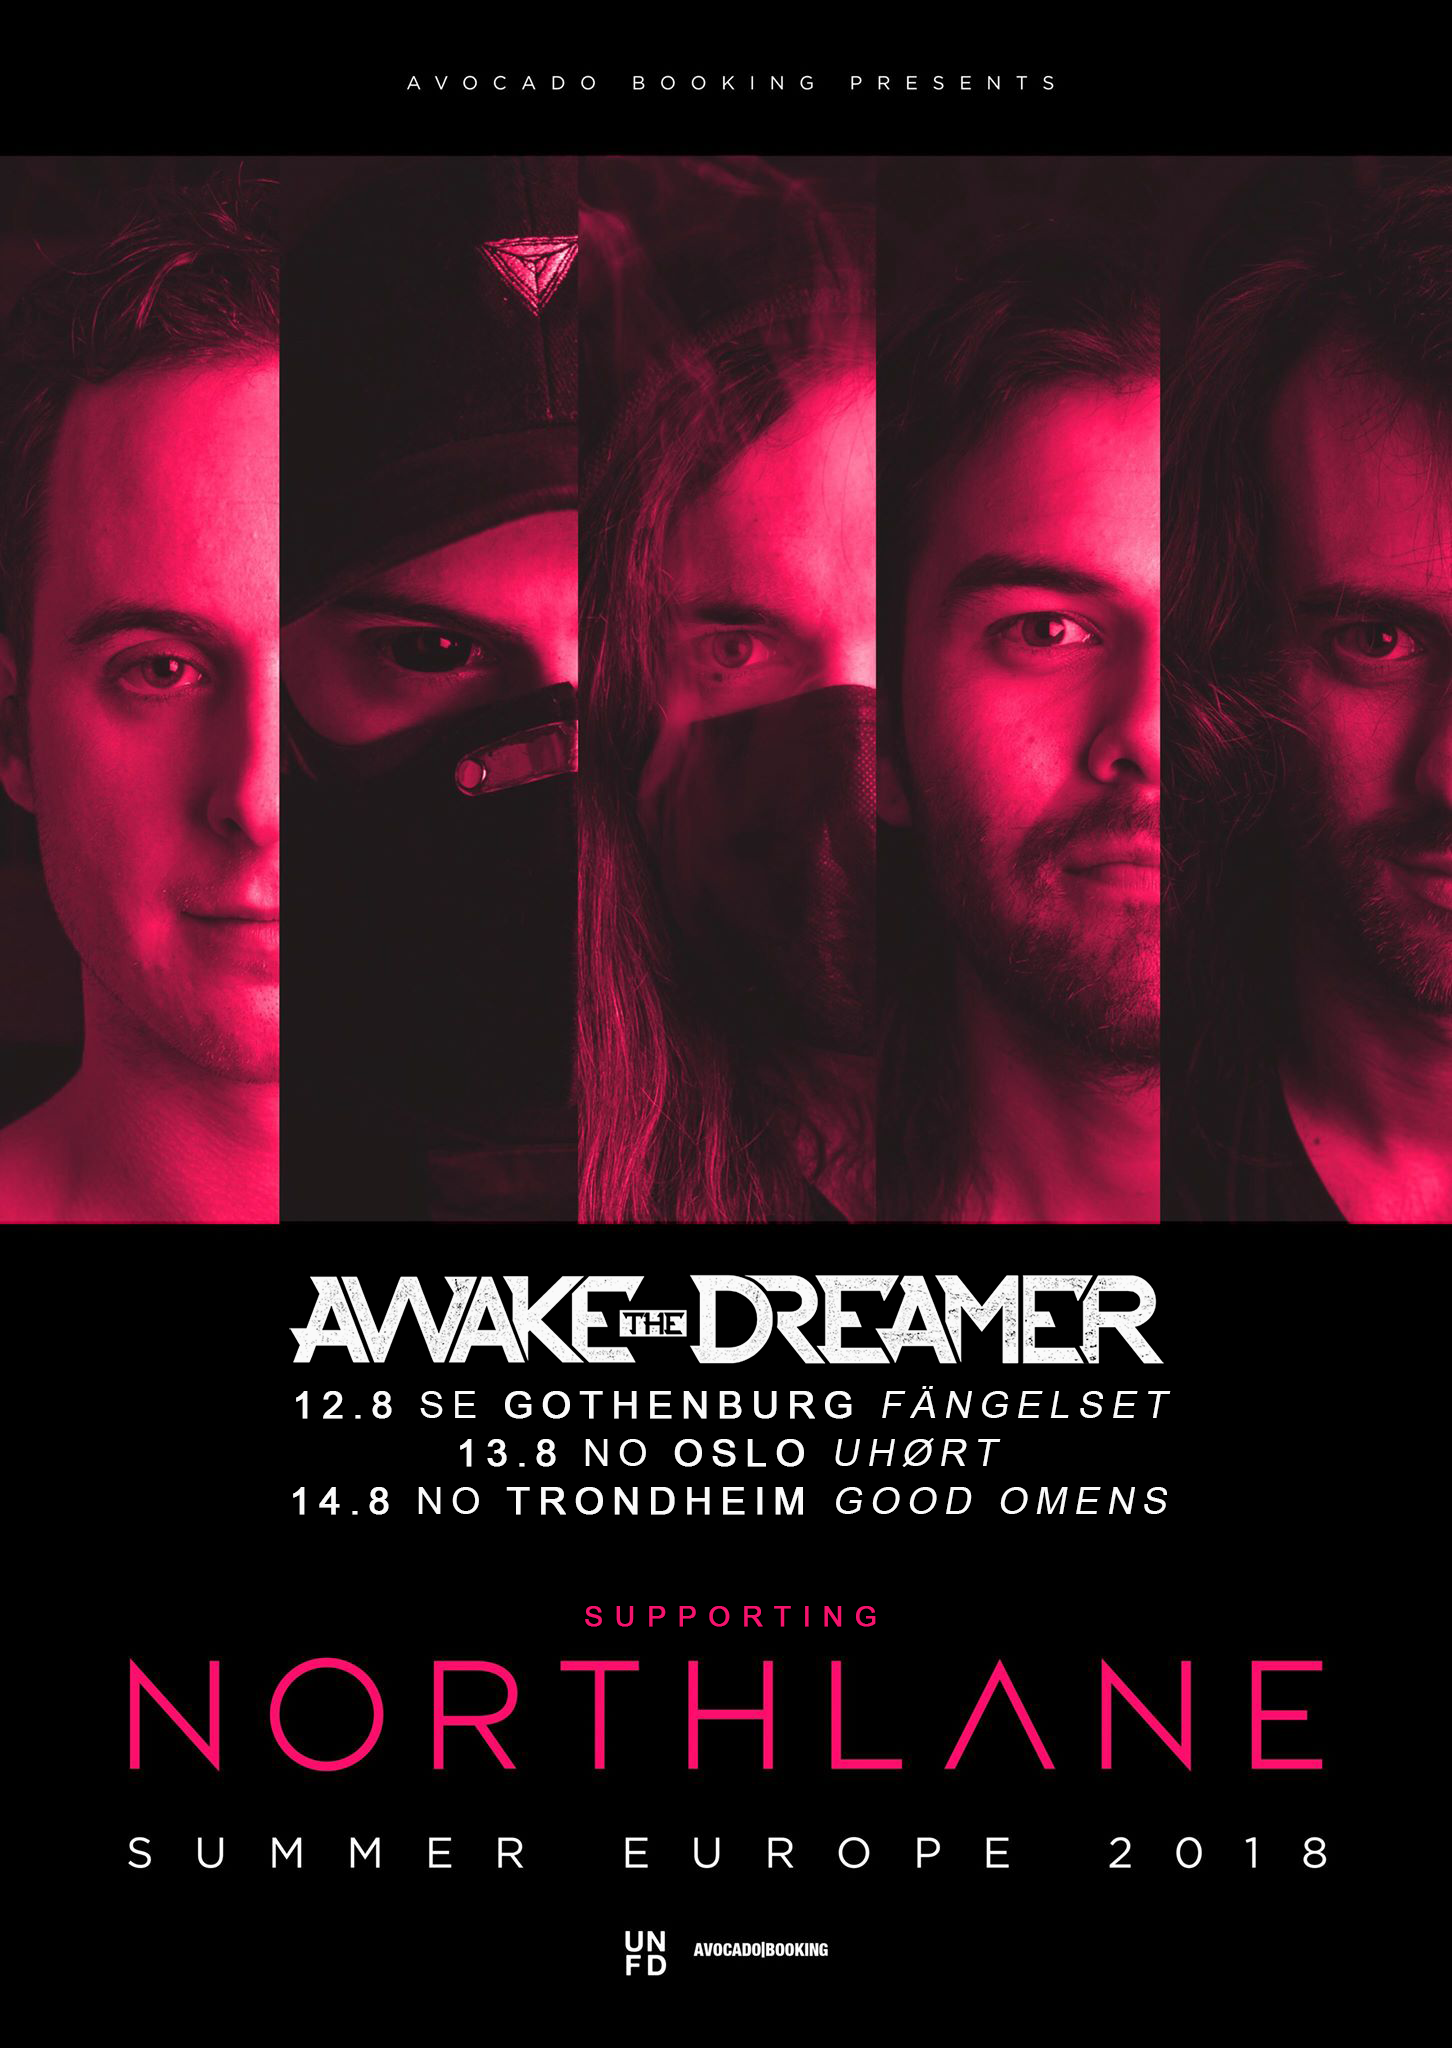 ATD_all_northlane_aug18png